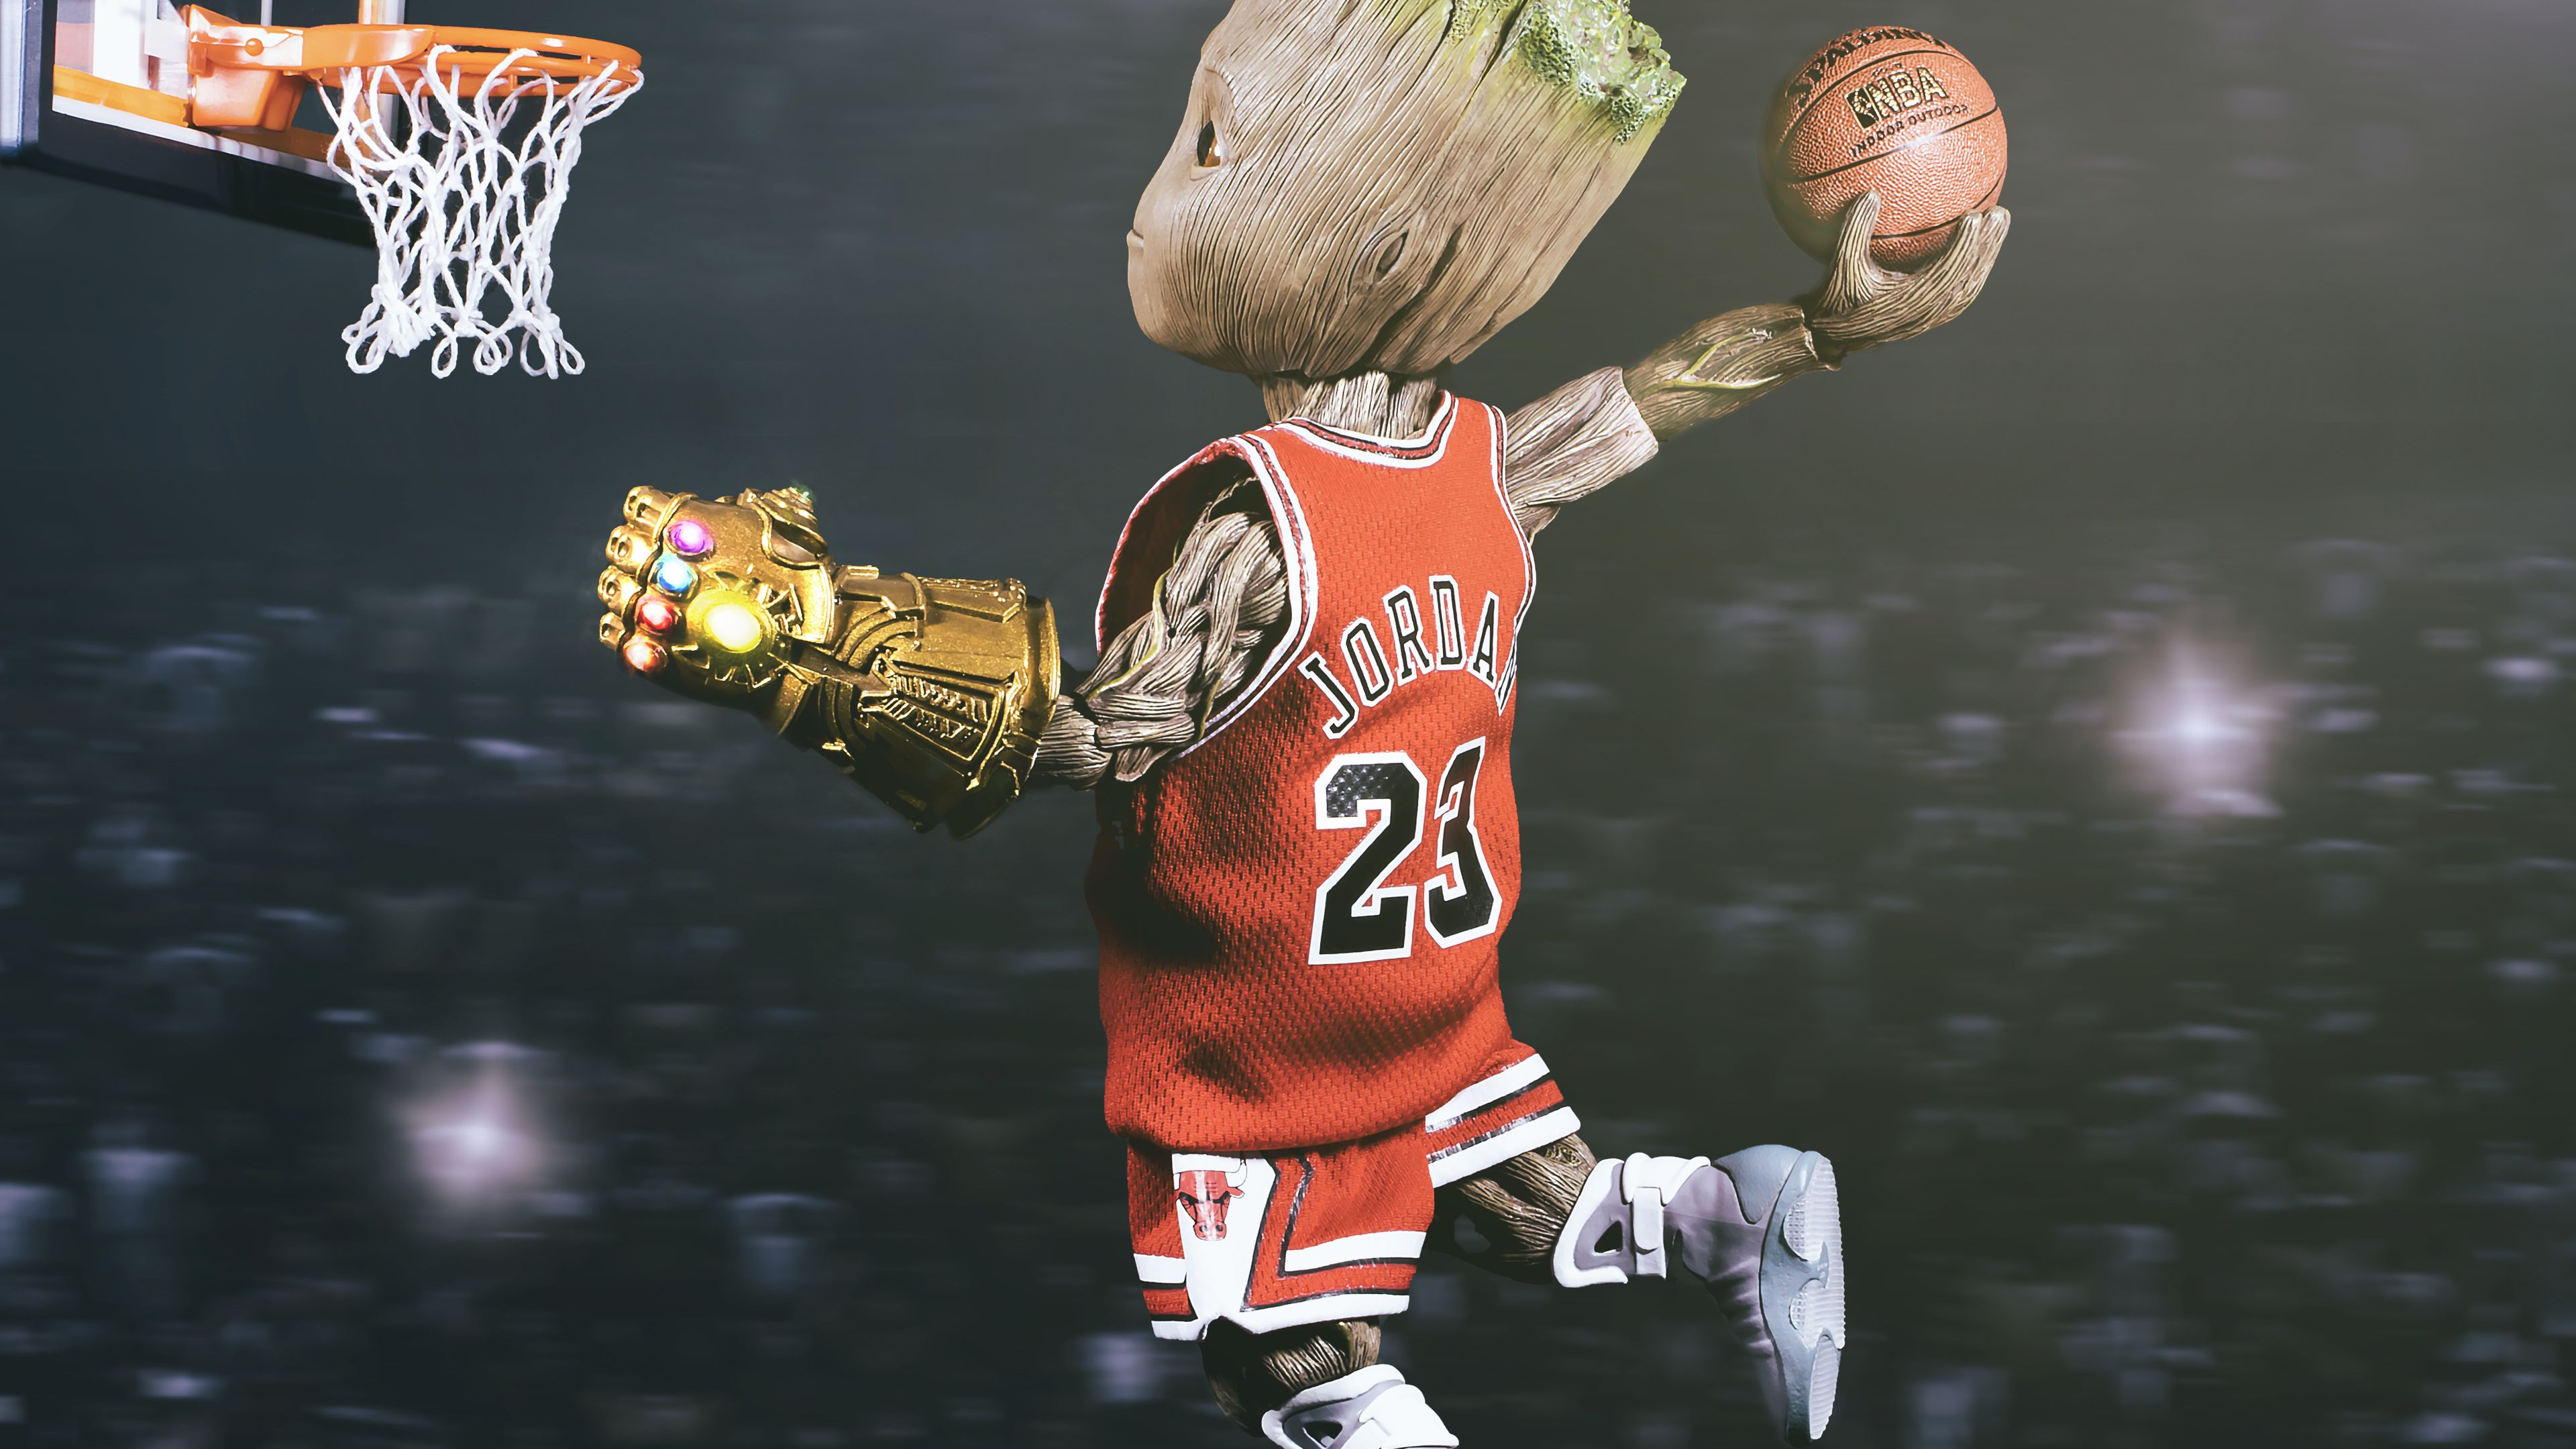 Baby Groot Playing Basketball Superheroes Wallpapers Hd Wallpapers Basketball Wallpapers Baby Groot Wallpapers Baby Groot Marvel Artwork Superhero Wallpaper